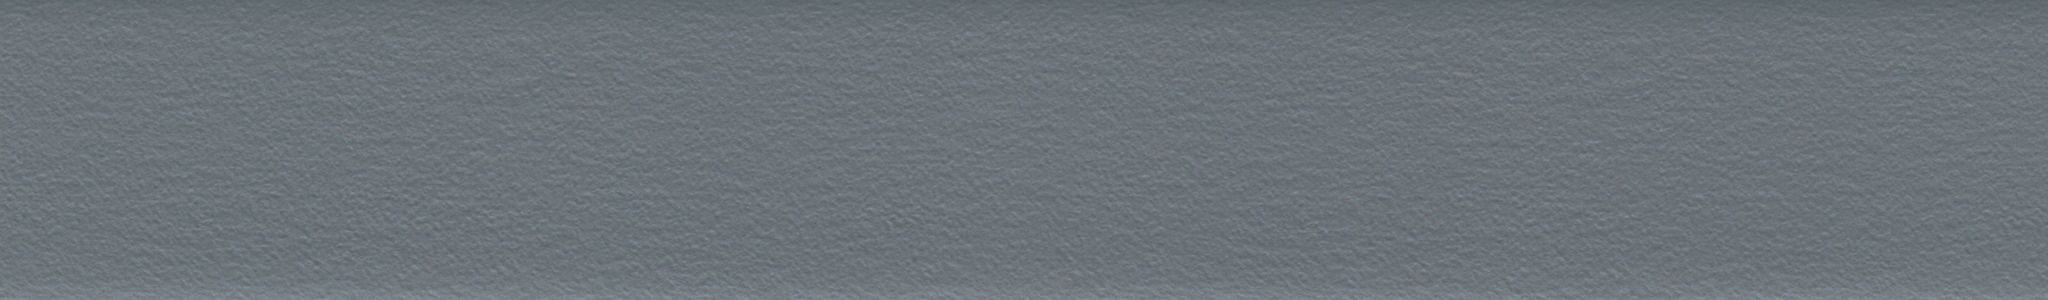 HU 171164 ABS Edge Grey Soft Pearl 107